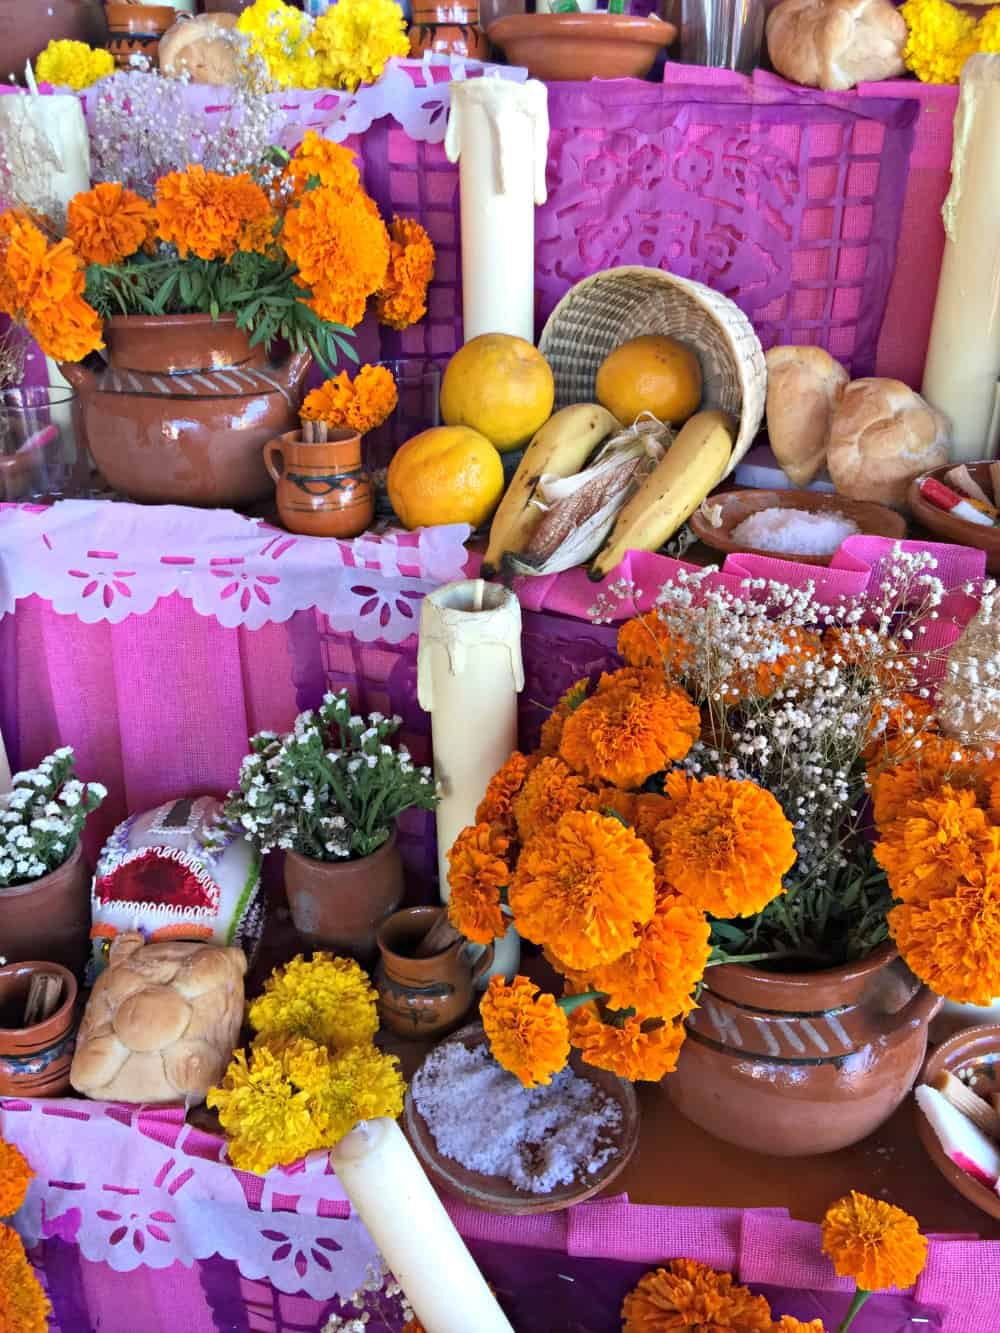 Offerings of bread, flowers, and fruits on a Dia de los Muertos altar.